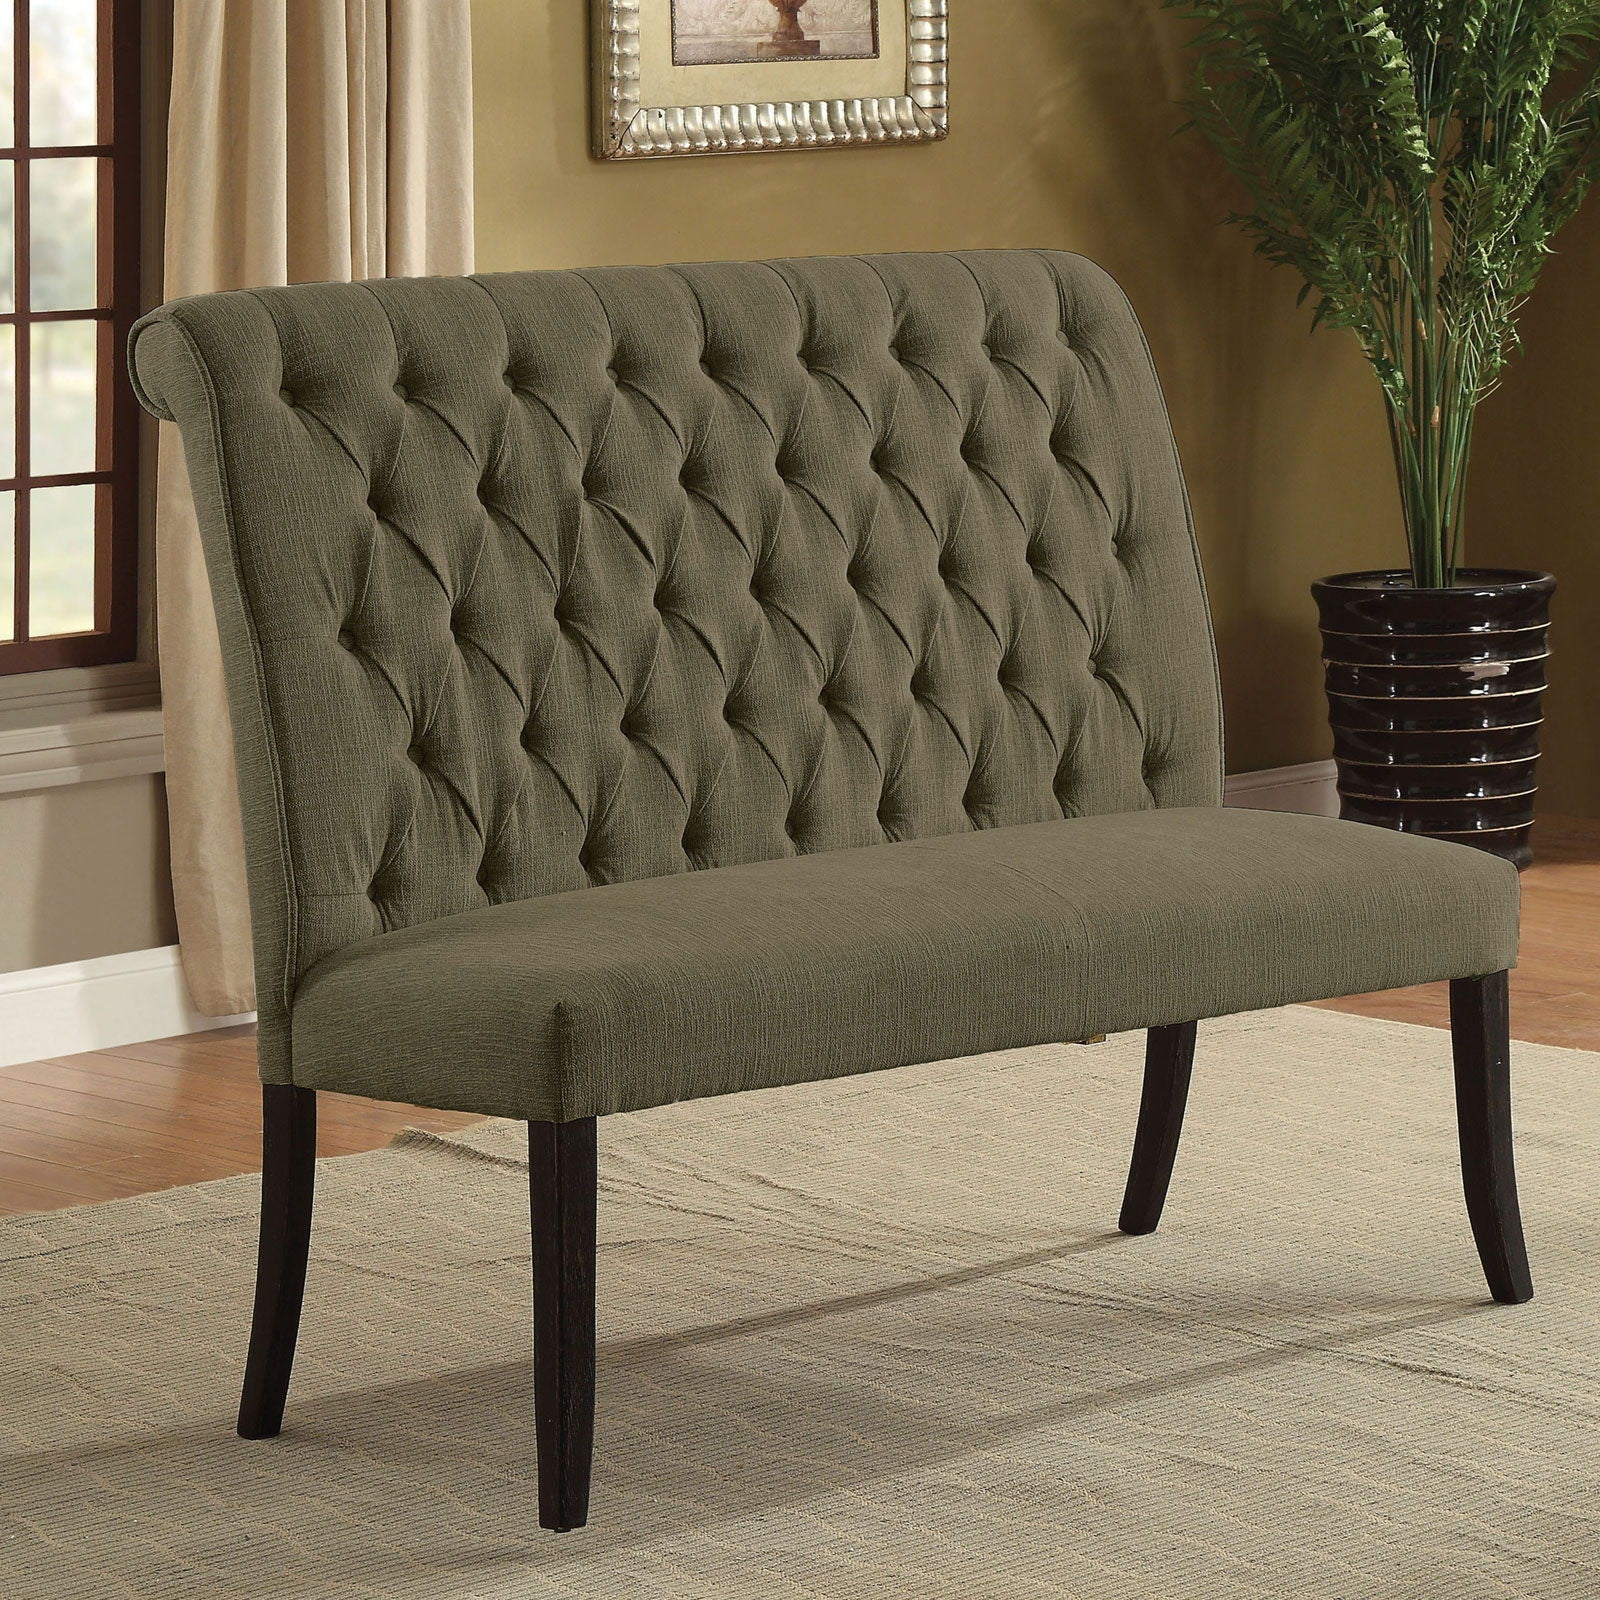 Mashall - Loveseat Bench - Antique Black